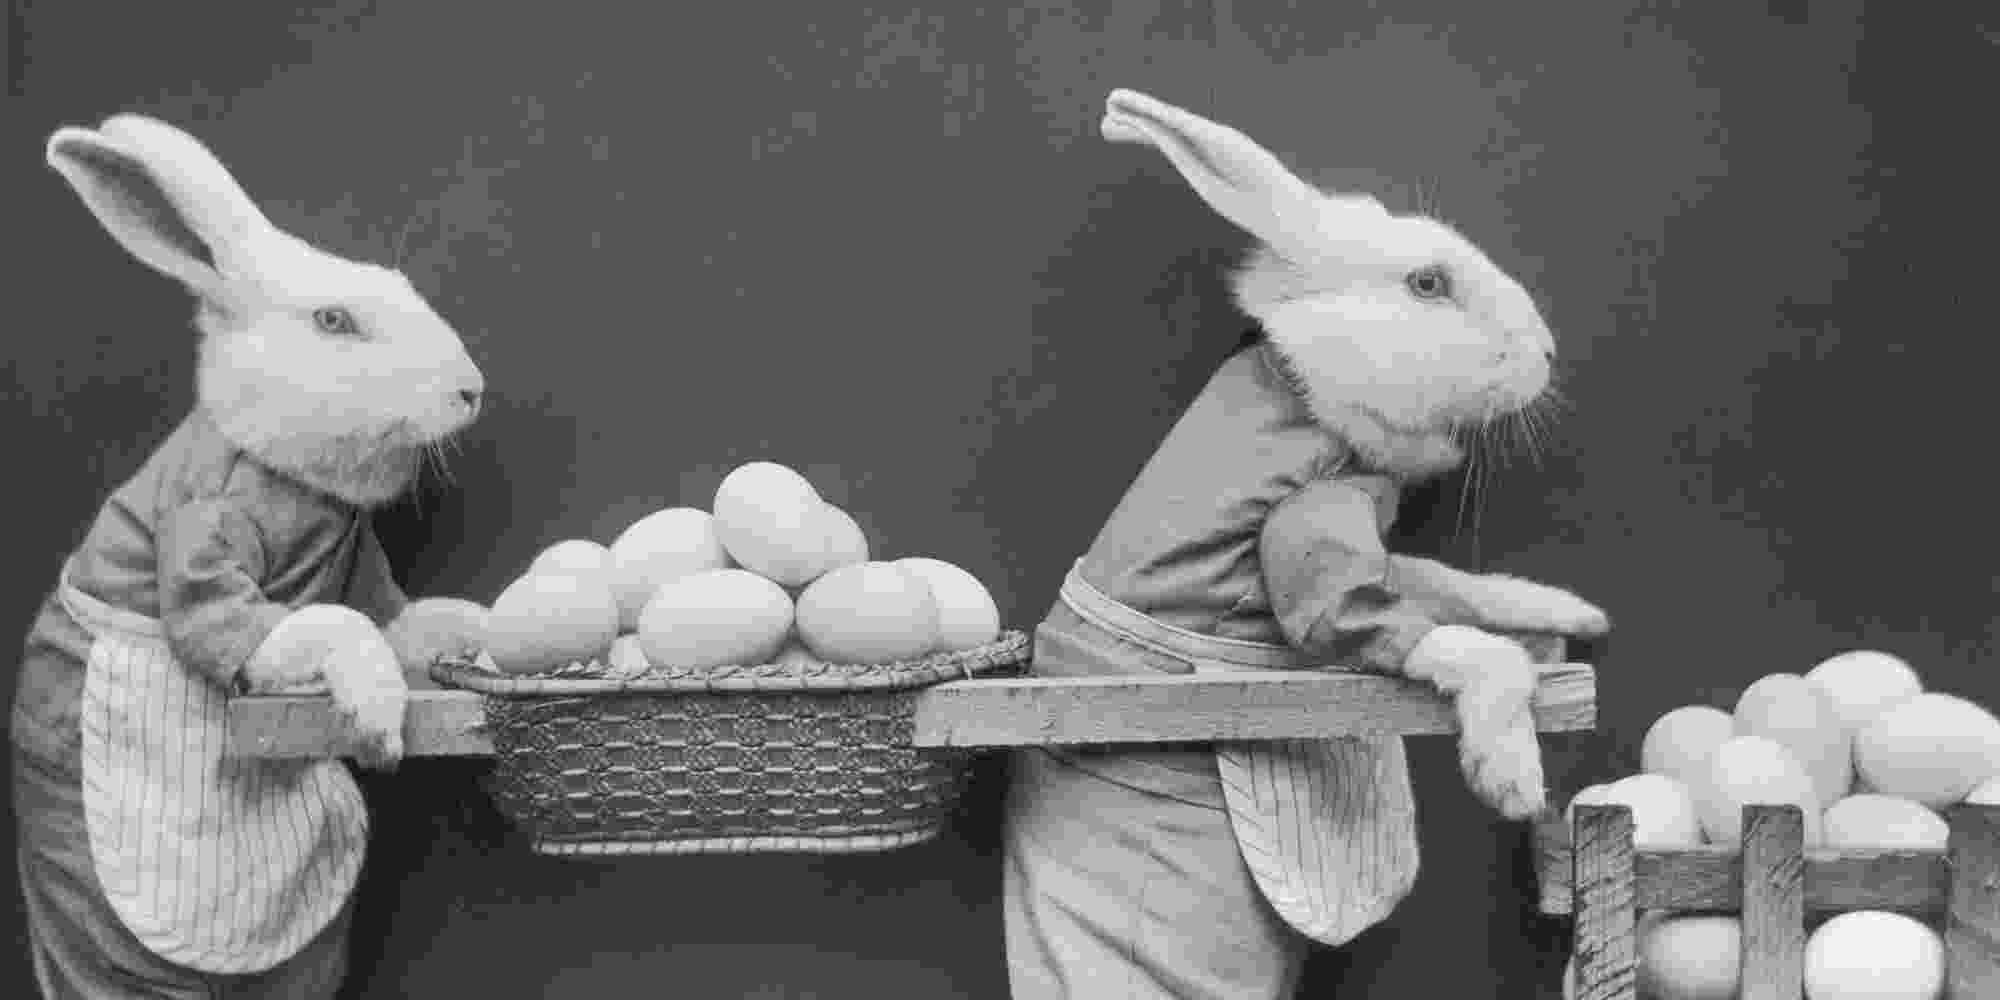 easter bunny images retro easter bunny images the graphics fairy images bunny easter